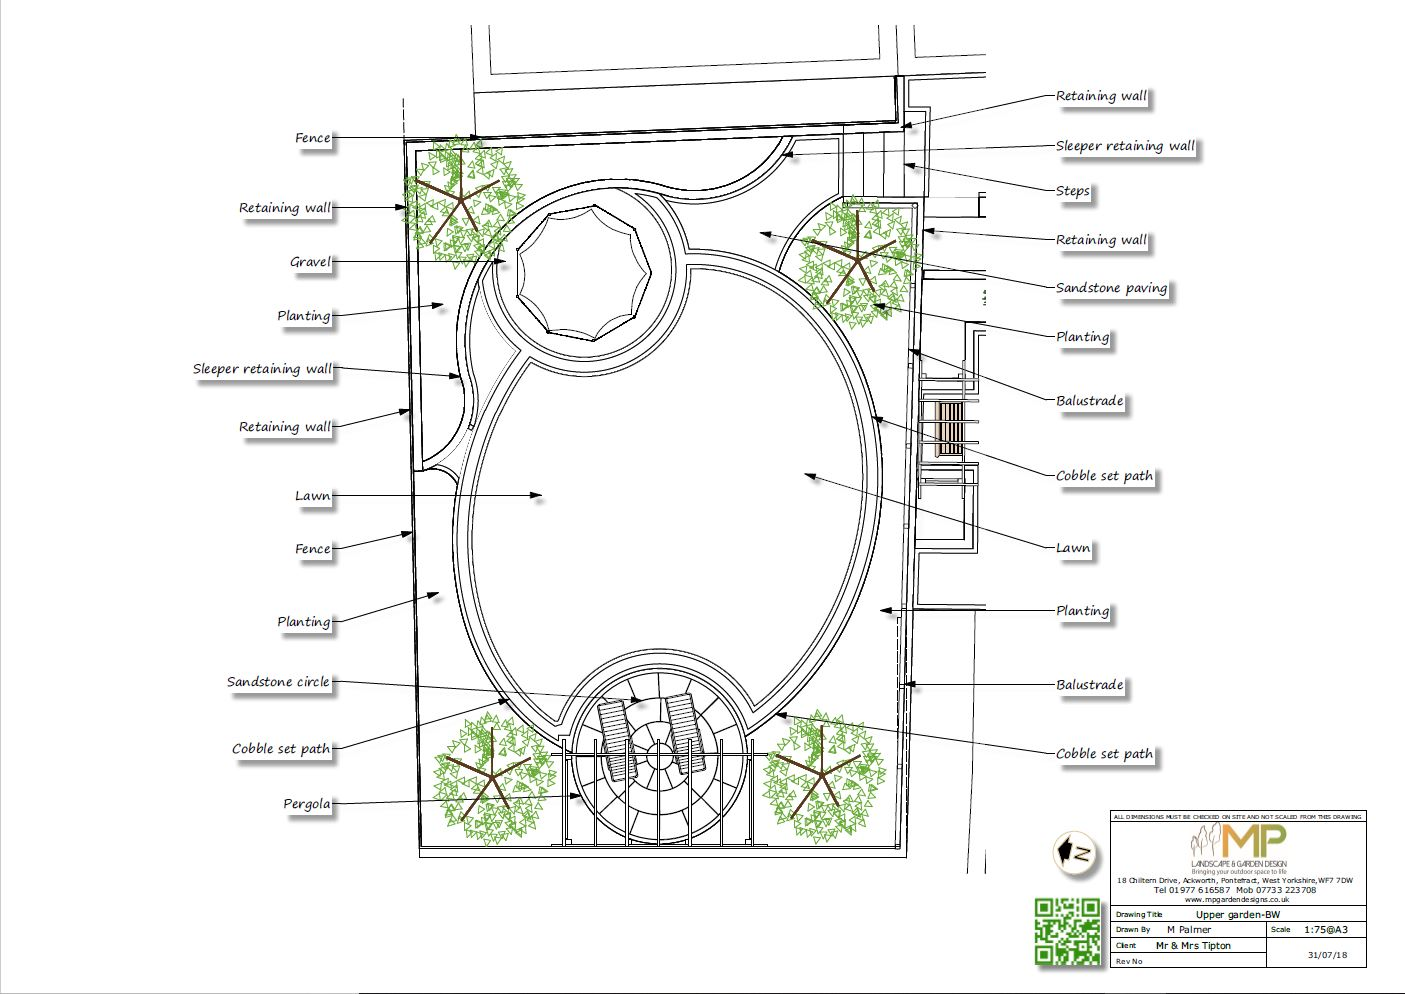 Garden design plans black and white for a property in Castleford.